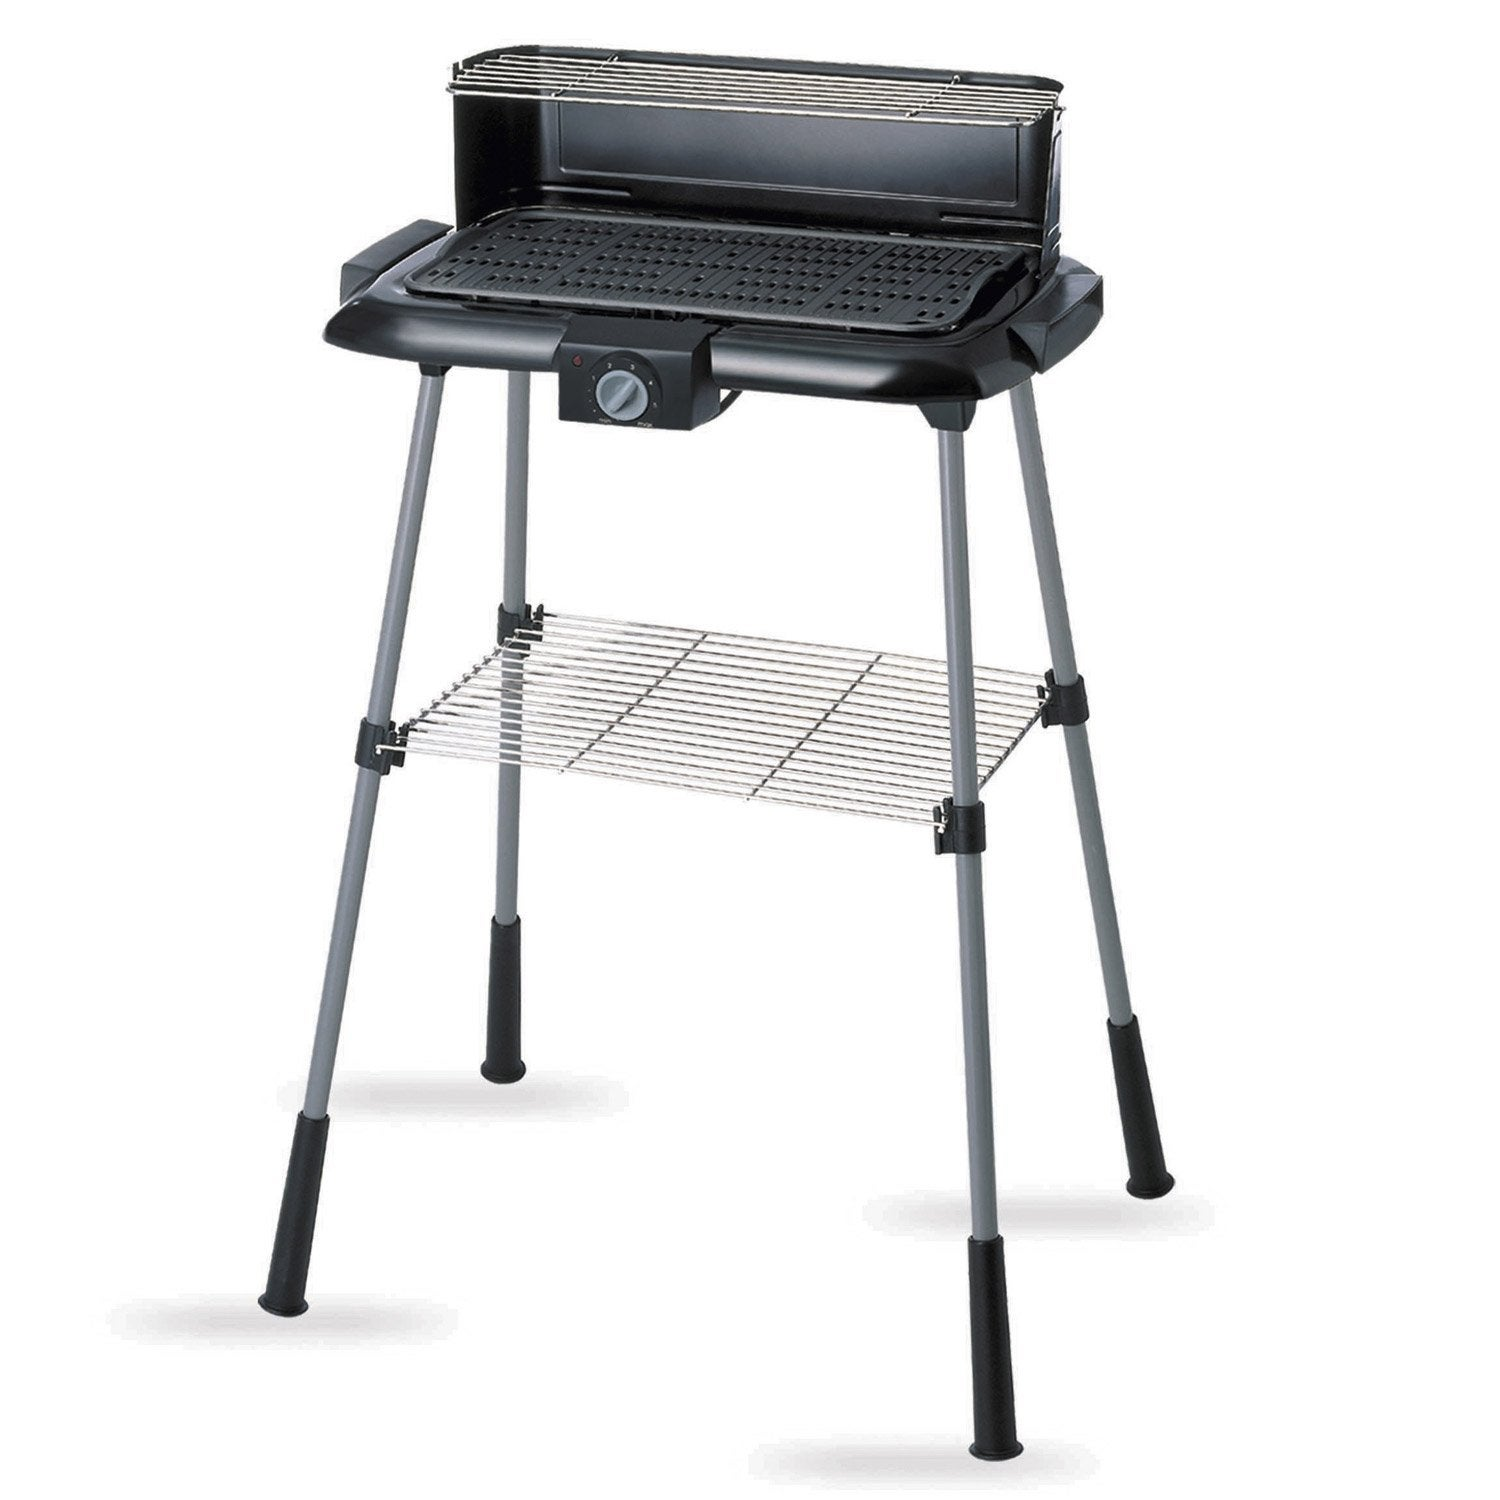 Barbecue lectrique kb6050trce leroy merlin - Barbecue leroy merlin ...